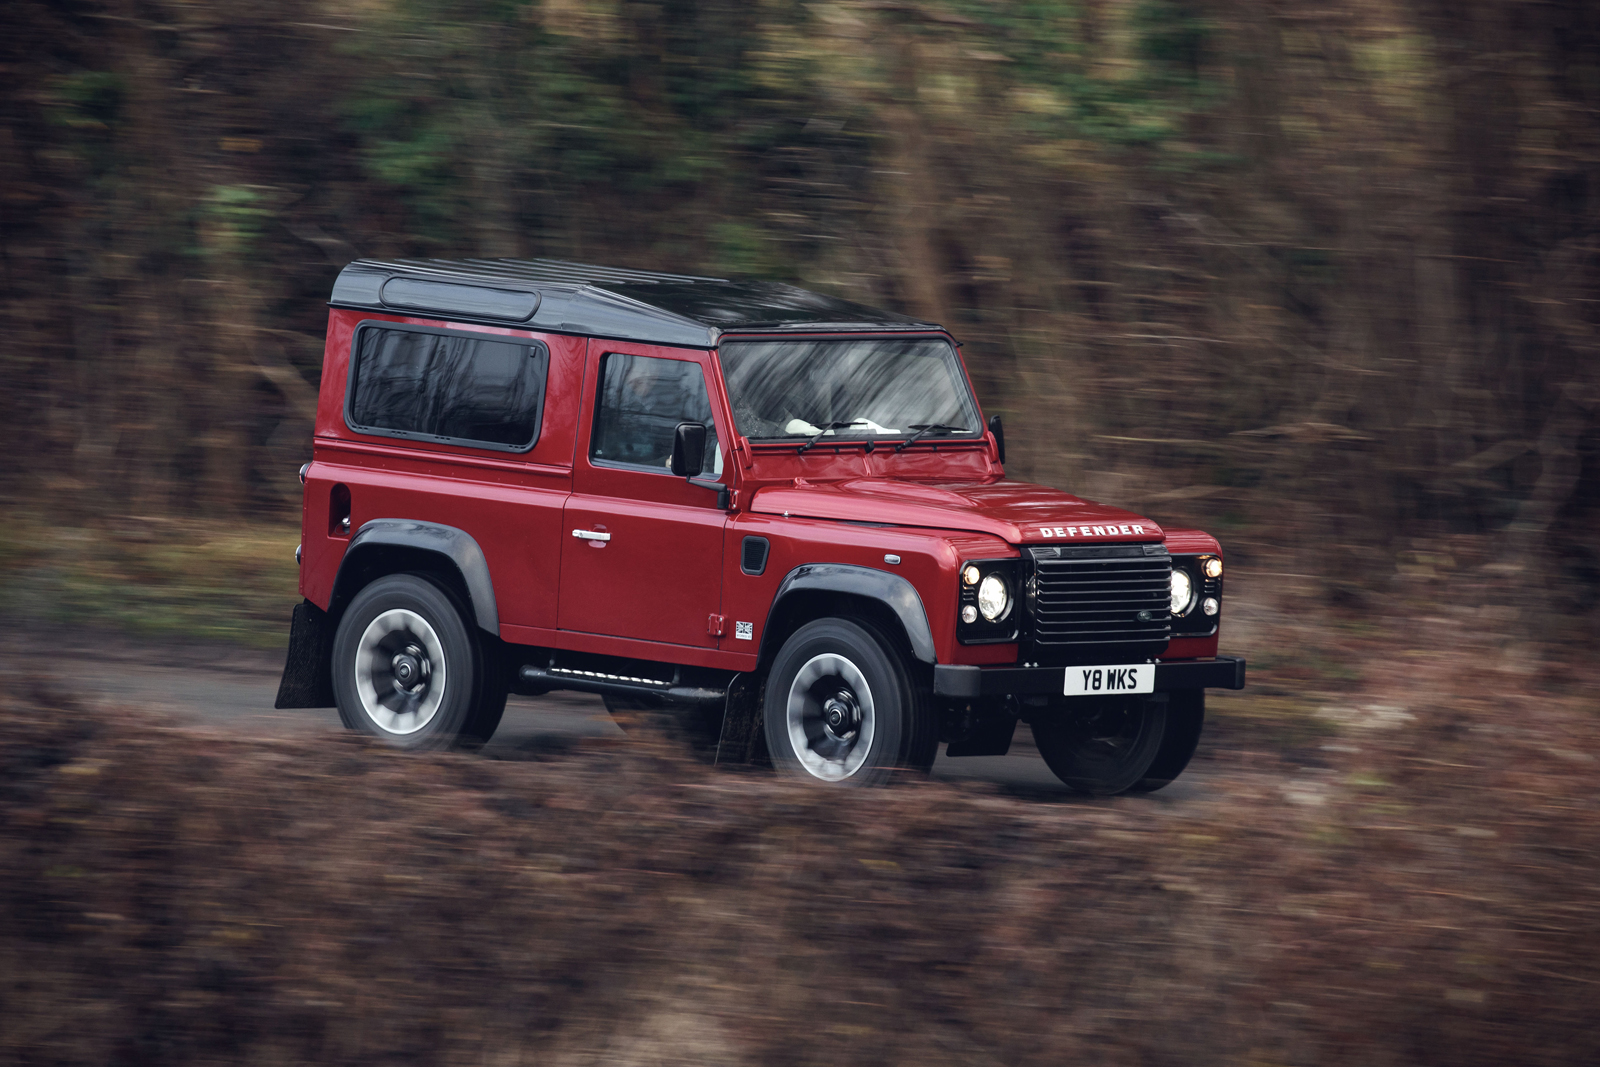 Land Rover Defender Works V8 Is The Most Powerful Defender